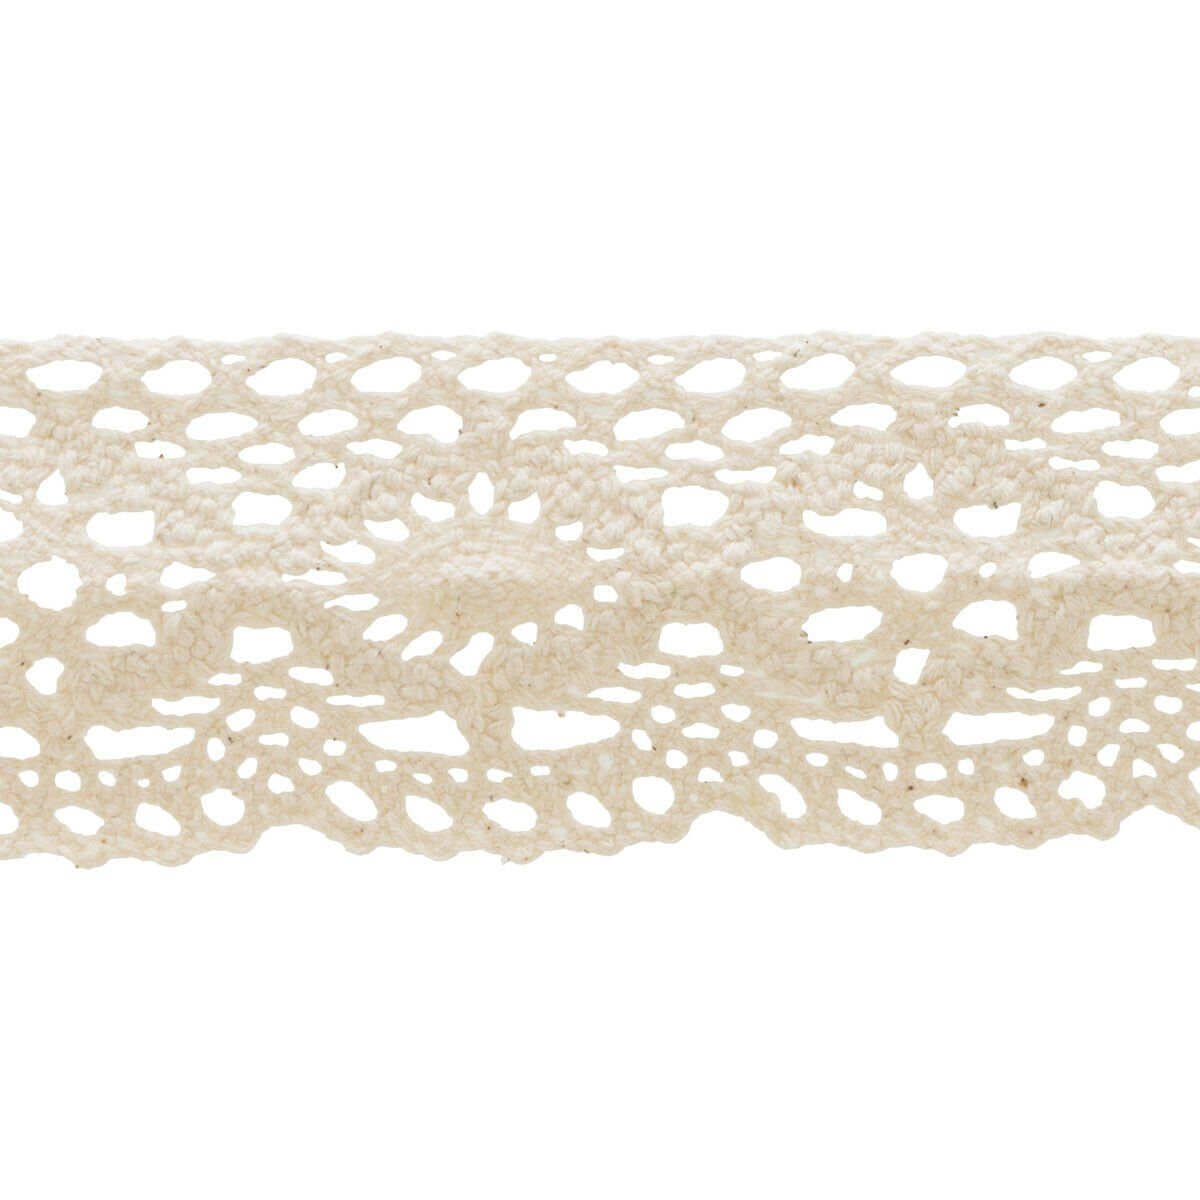 Cluny Lace 1 1/8 in wide Natural